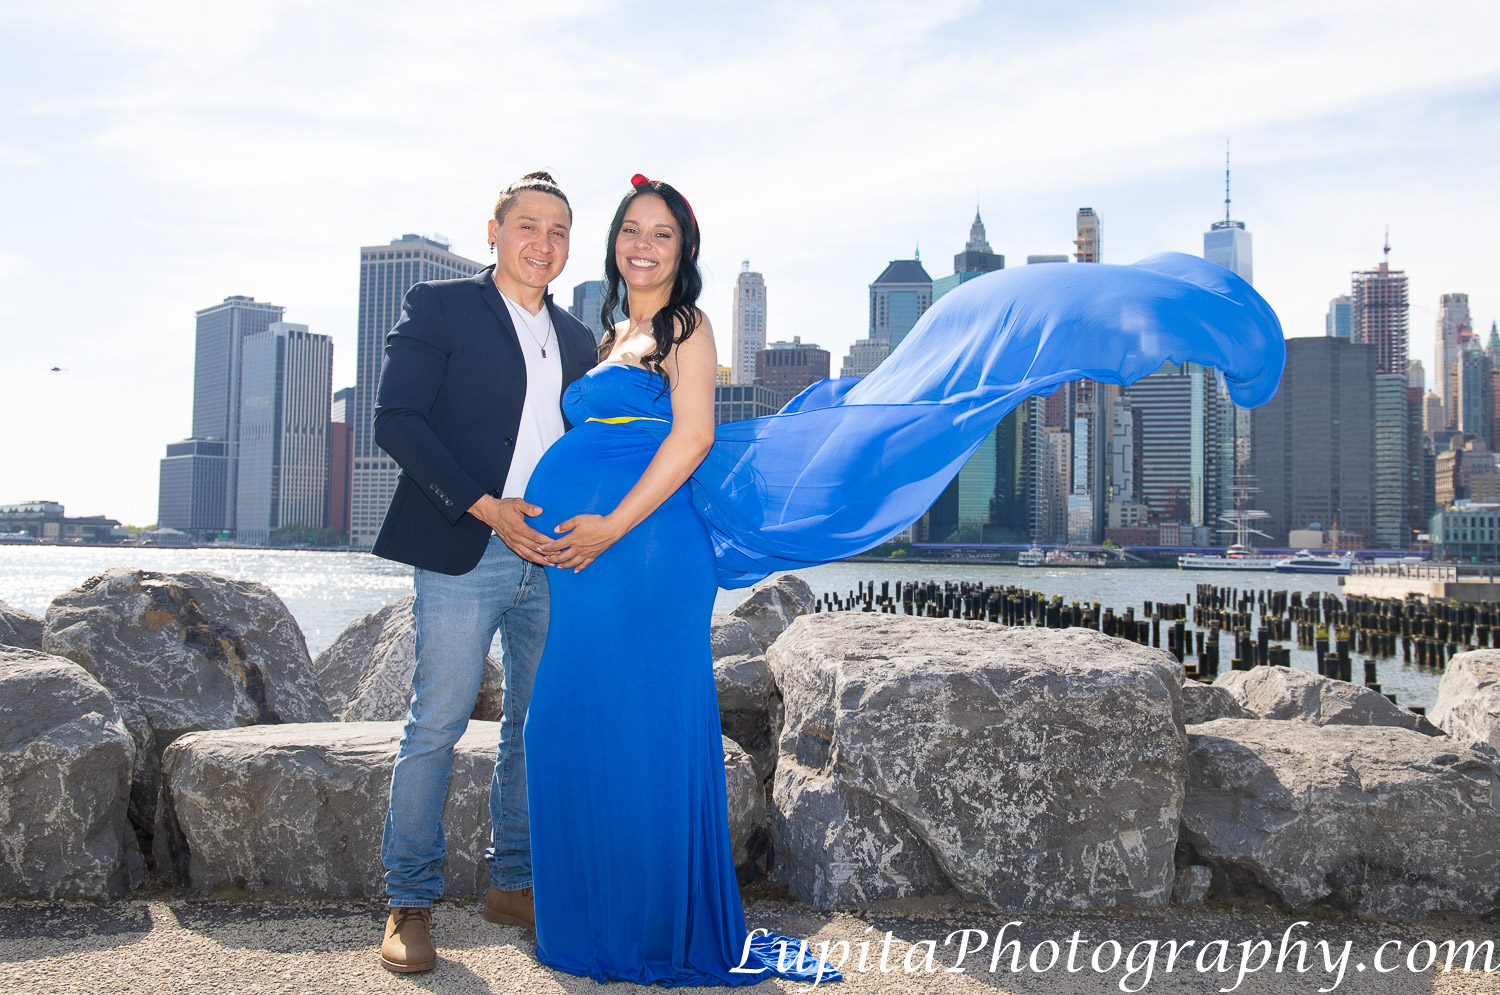 Pregnancy/maternity photographer in New York City (Brooklyn, Bronx, Queens, Staten Island, Manhattan). Fotografía de embarazos/maternidad en la ciudad de Nueva York. www.LupitaPhotography.com